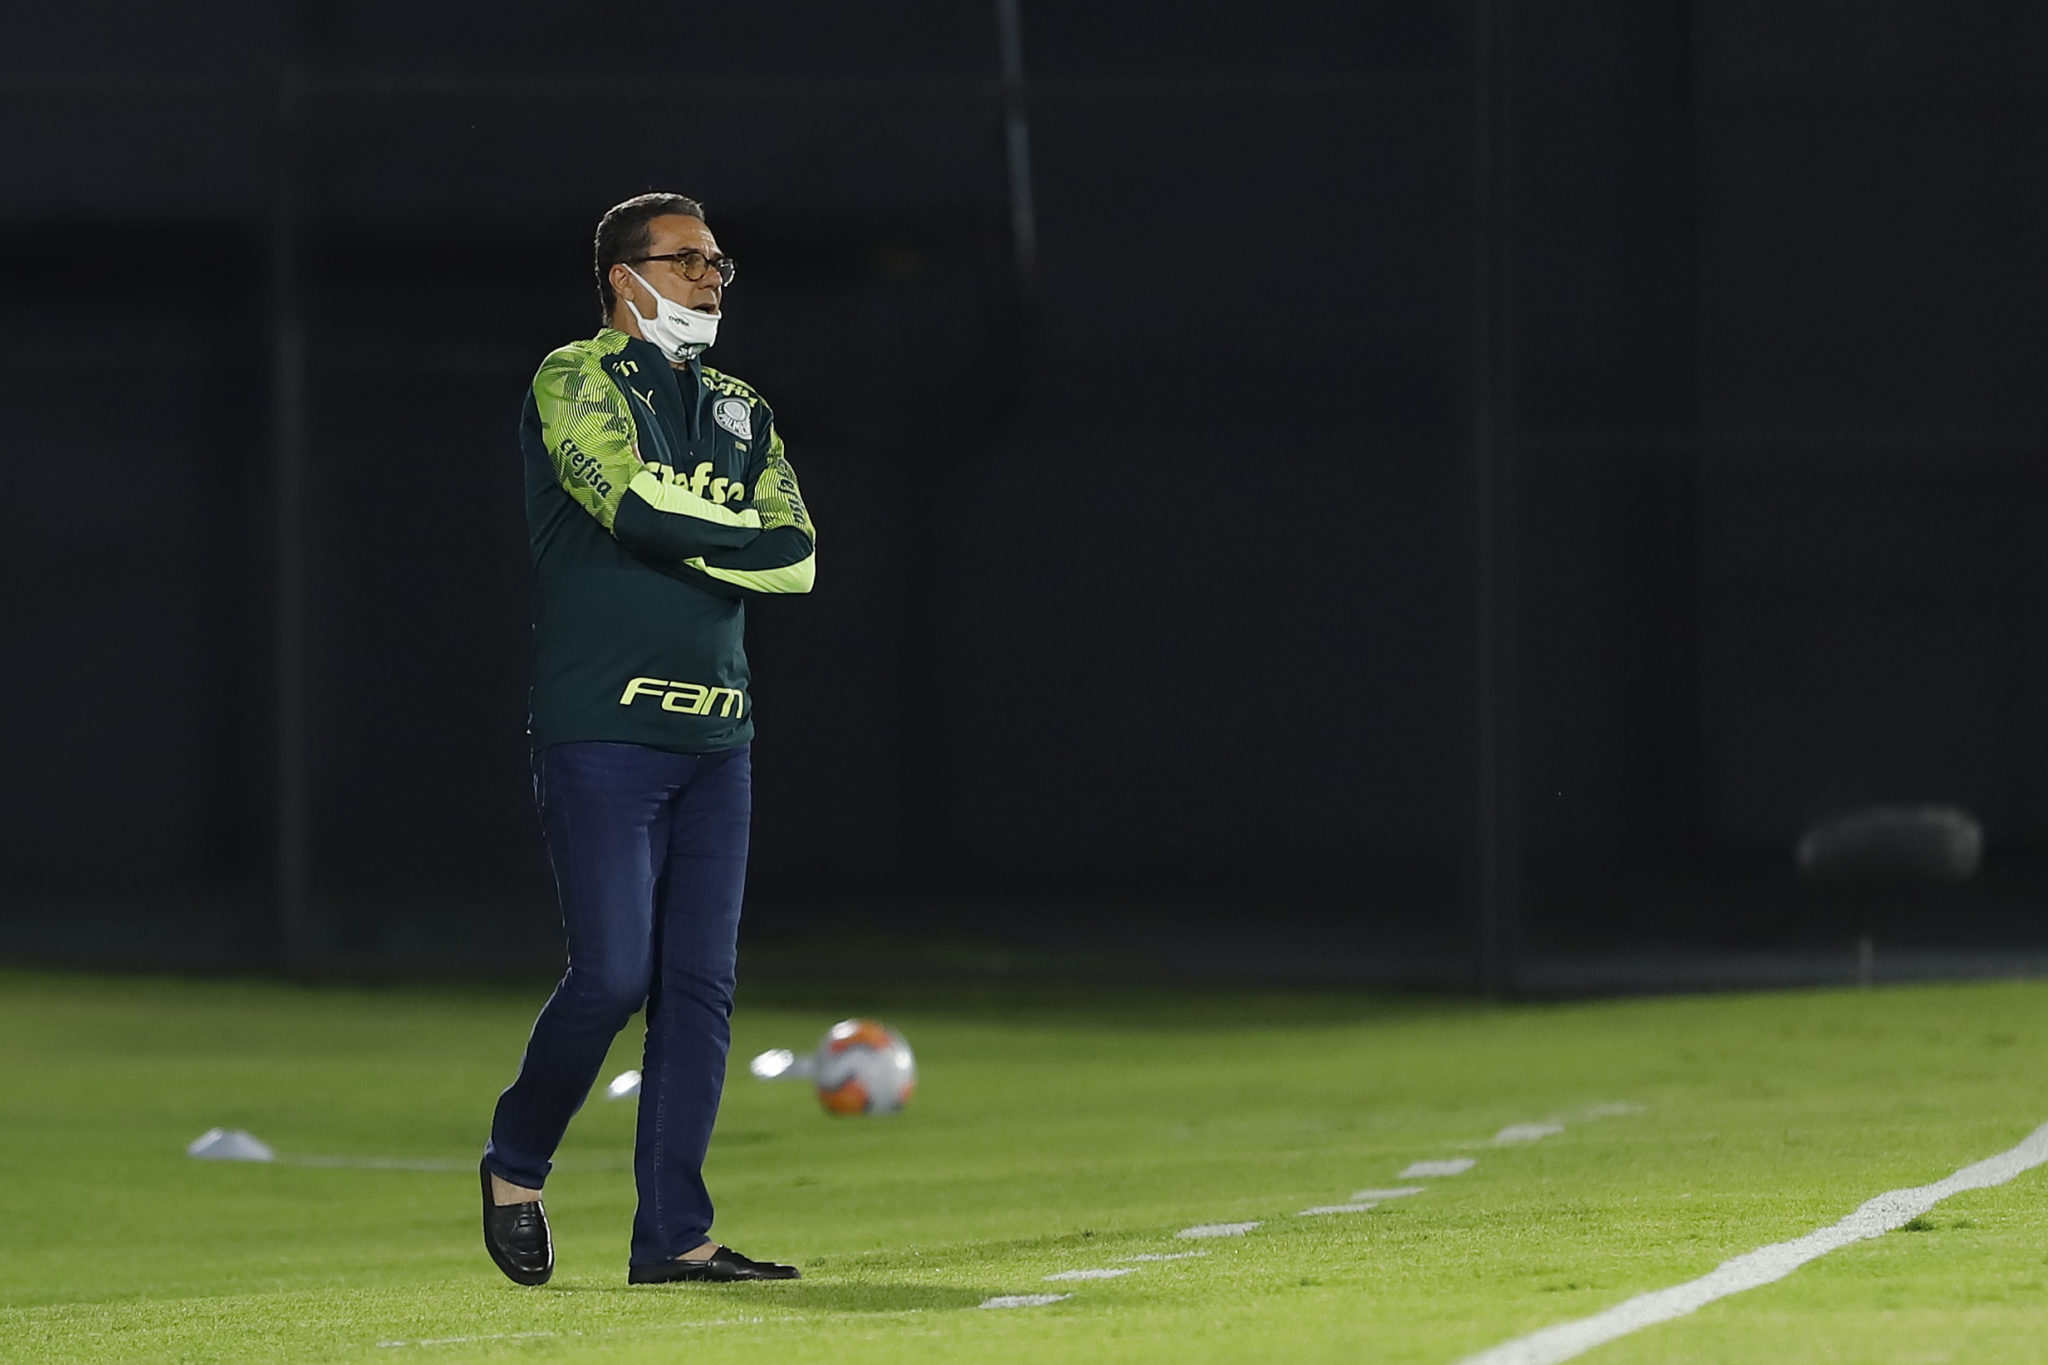 ASUNCION, PARAGUAY - SEPTEMBER 23: Vanderlei Luxemburgo head coach of Palmeiras wearing a protective mask looks on during a group B match of Copa CONMEBOL Libertadores between Guarani and Palmeiras at Defensores del Chaco Stadium on September 23, 2020 in Asuncion, Paraguay. (Photo by Nathalia Aguilar - Pool/Getty Images)